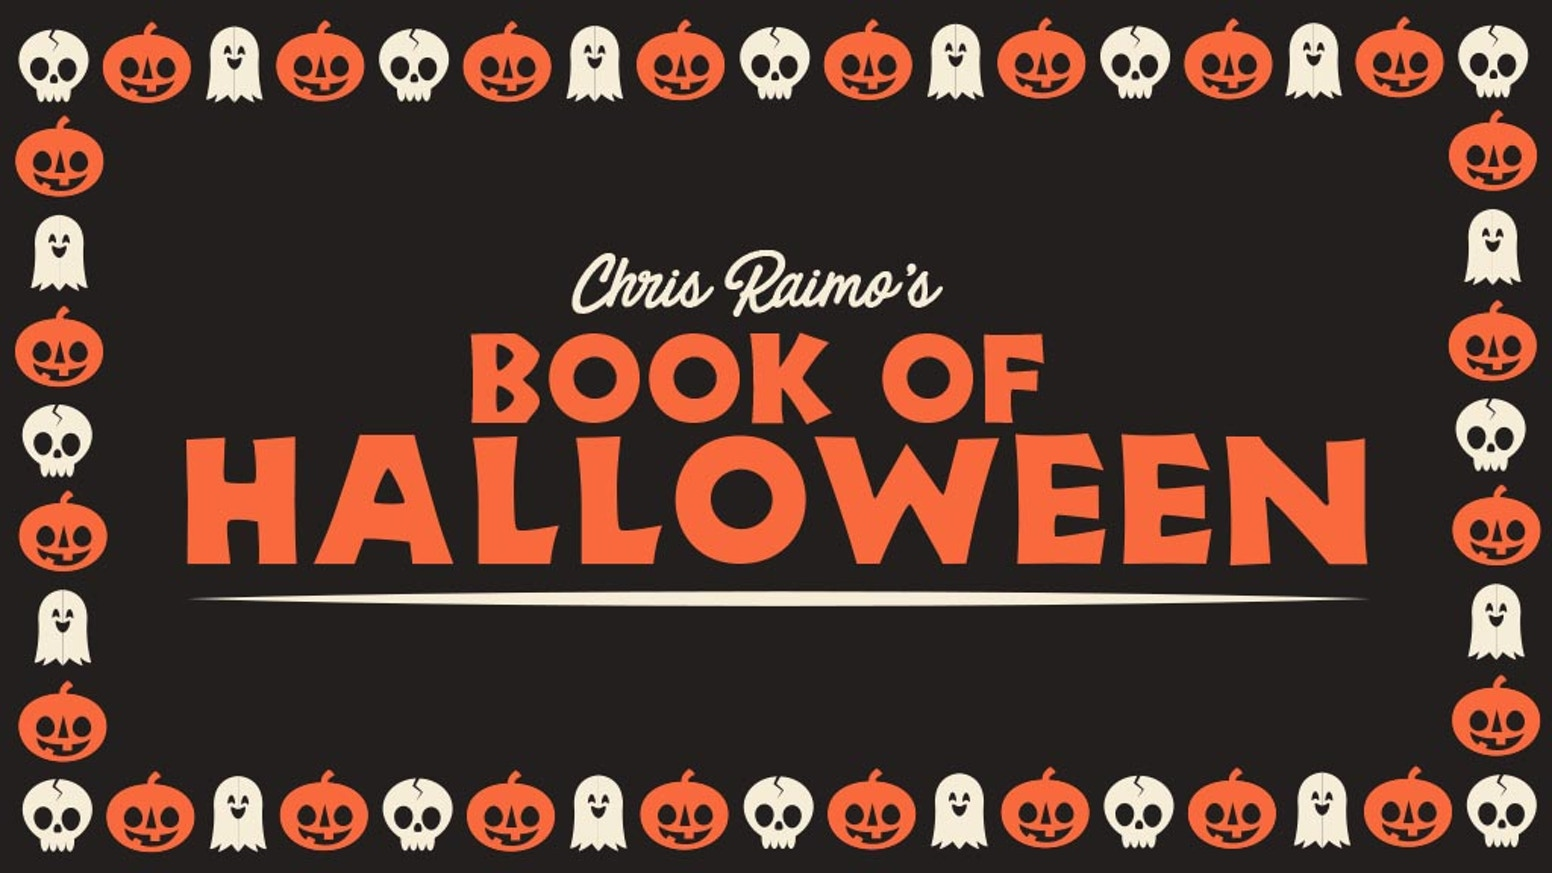 Halloween Schort.Book Of Halloween By Chris Raimo Kickstarter